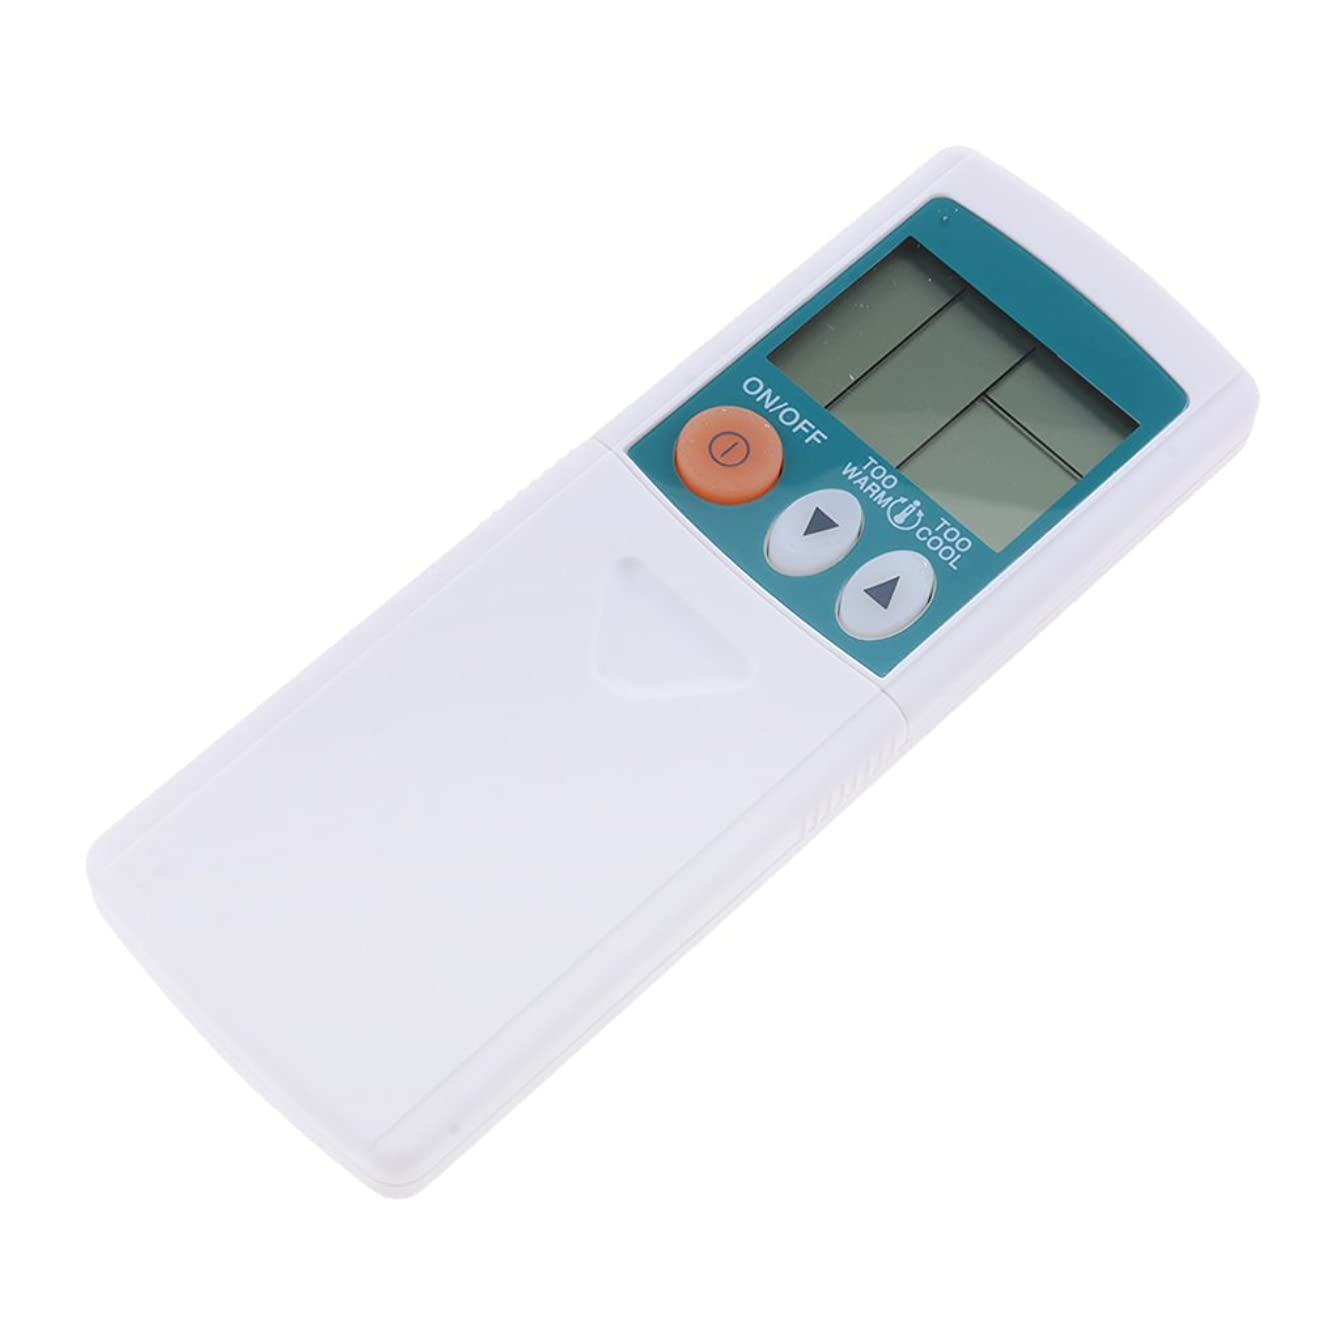 D DOLITY A/C Air Conditioner/Air Conditioning Remote Control for KP3AS,KP3BS,KP2ES,KP2BS